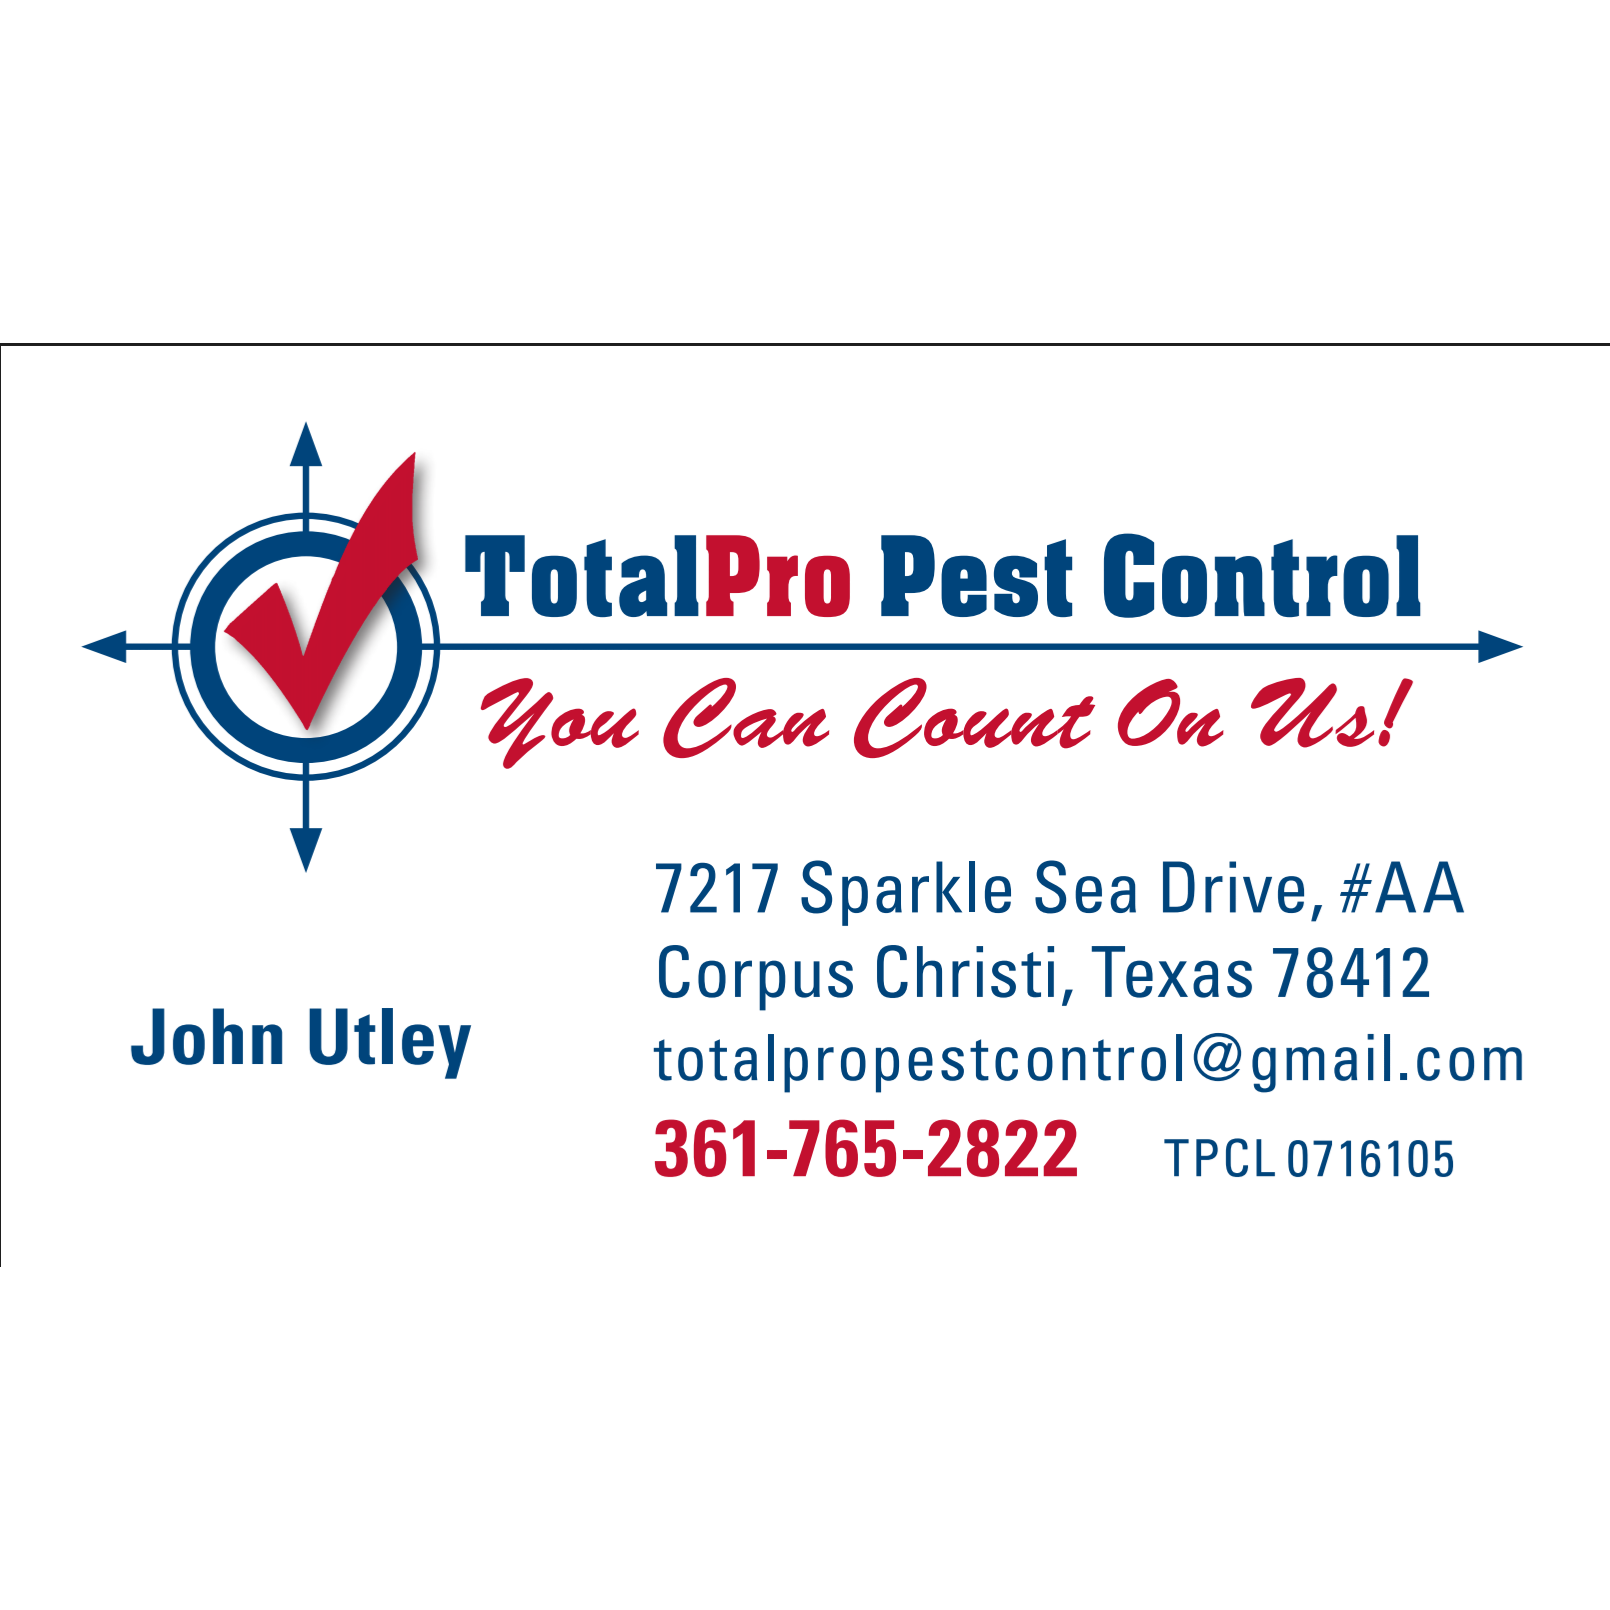 Total Pro Pest Control Coupons Near Me In Corpus Christi